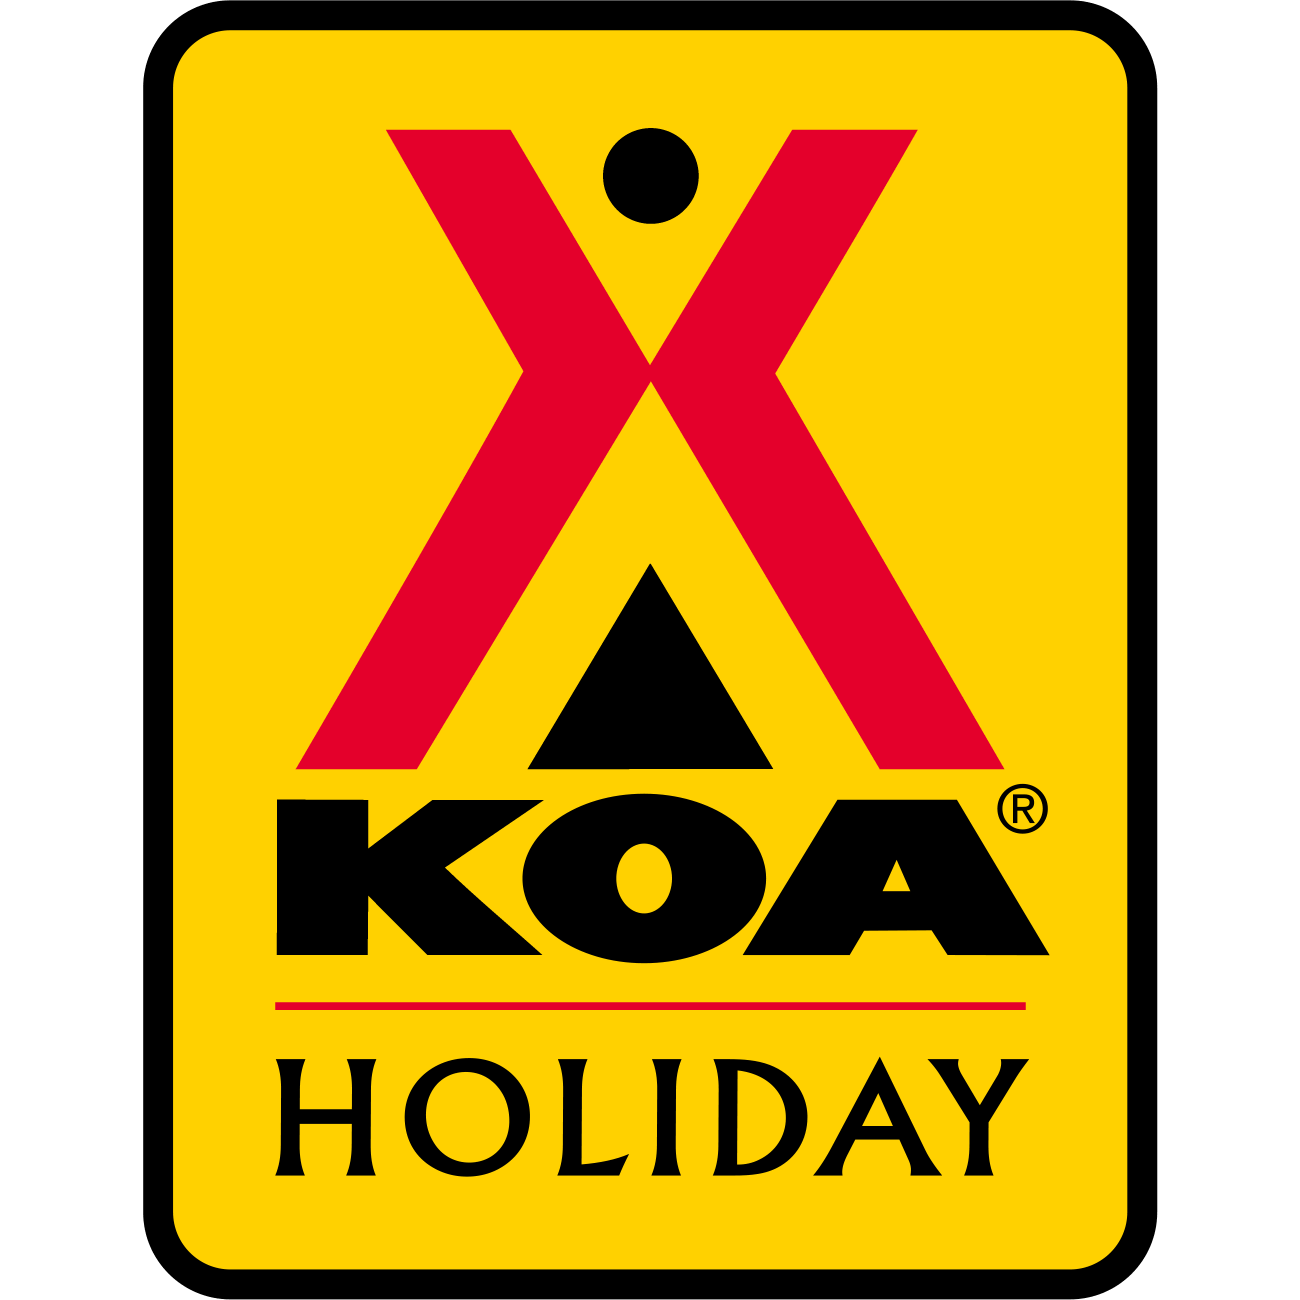 San Antonio / Alamo KOA Holiday